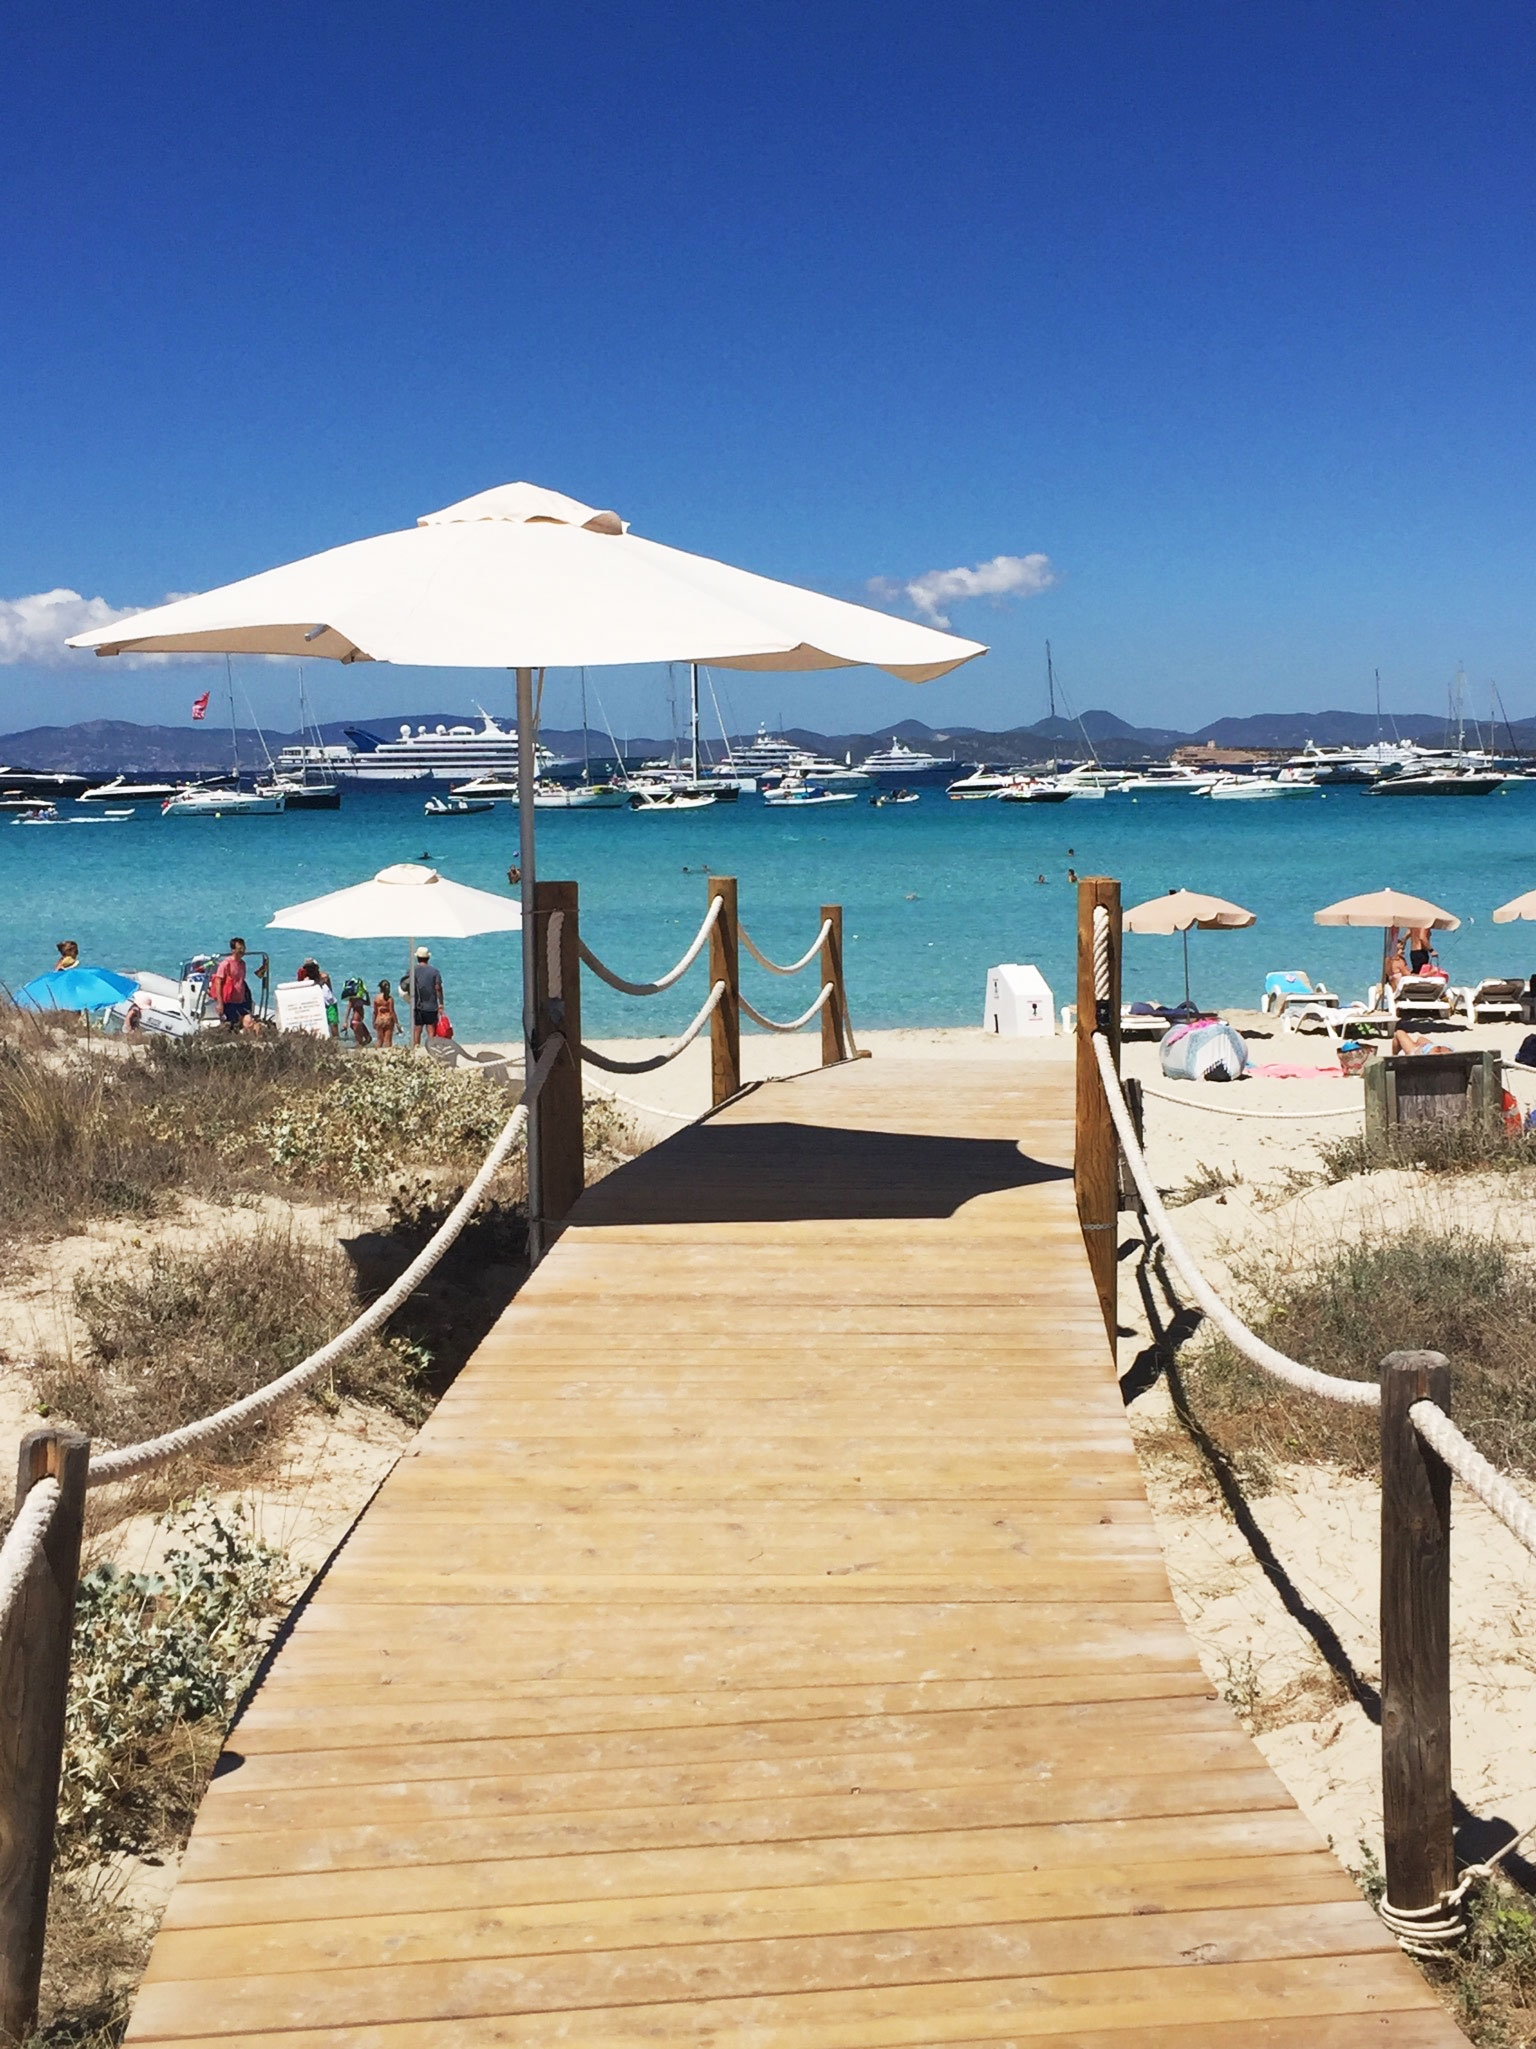 Beachside restaurant, Juan Y Andreas in Formentera, leads down to a bright blue ocean dotted with super yachts